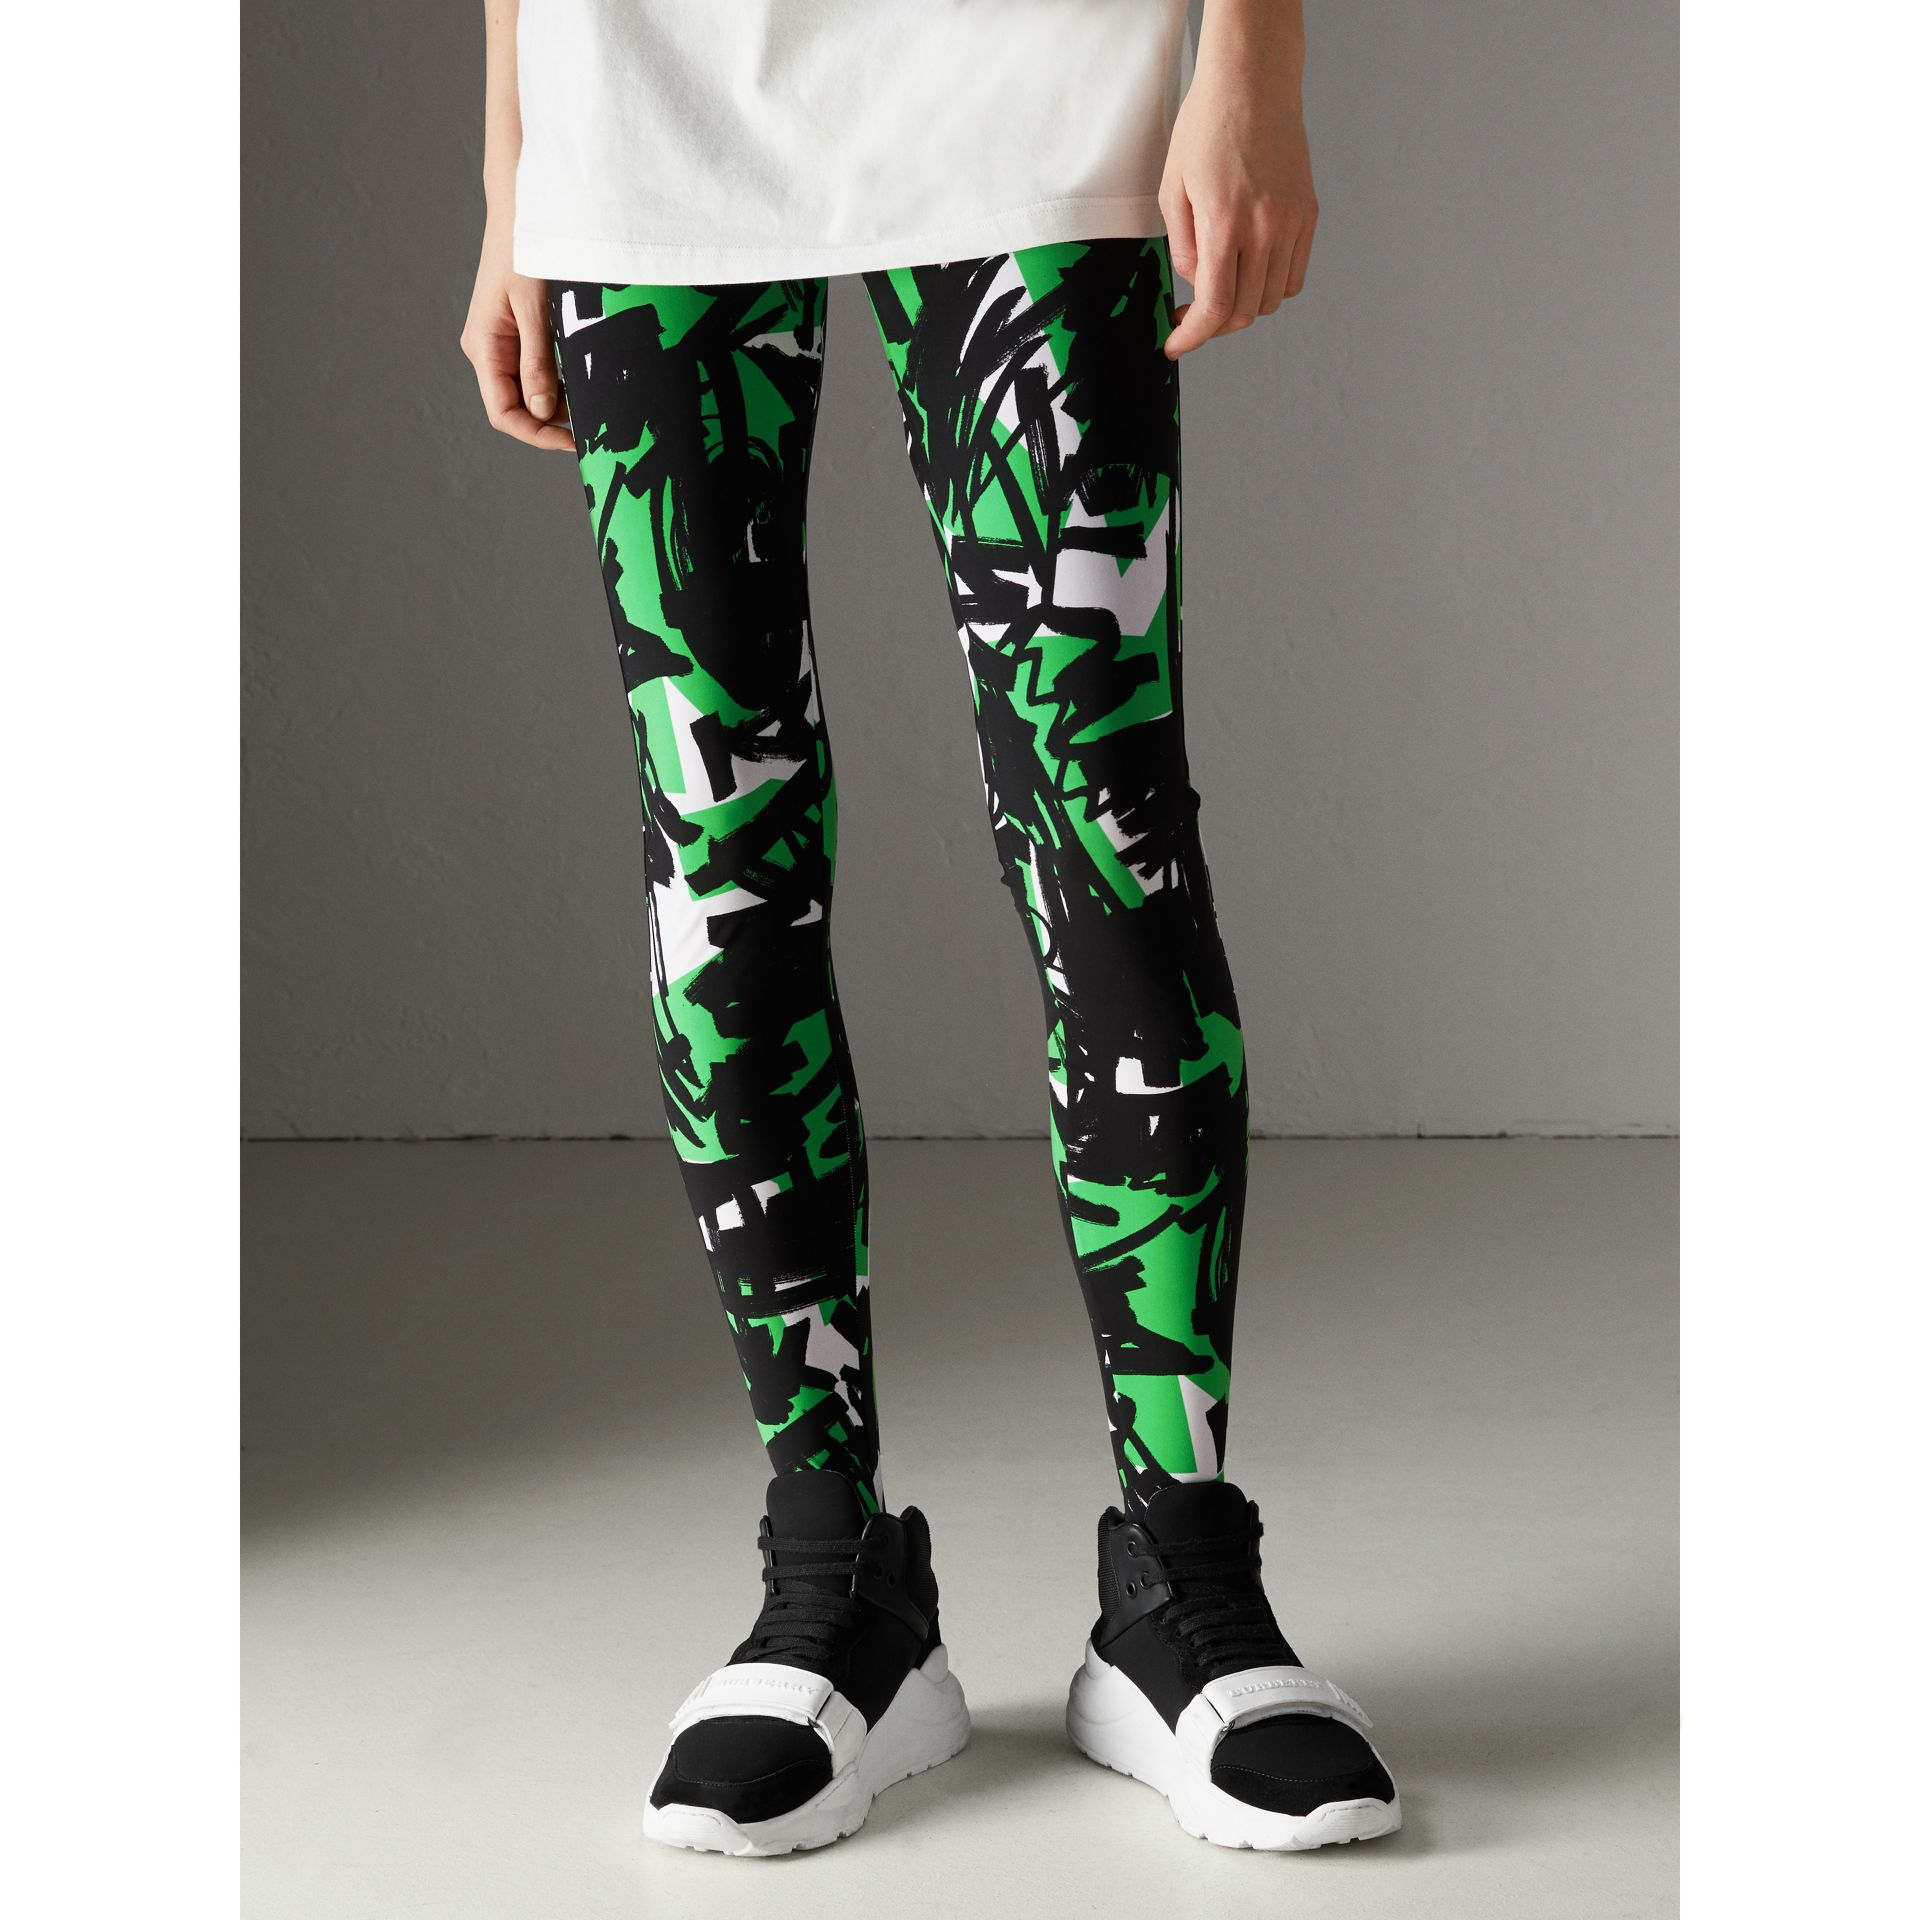 Graffiti Print Leggings in Neon Green - Women | Burberry Australia - gallery image 4